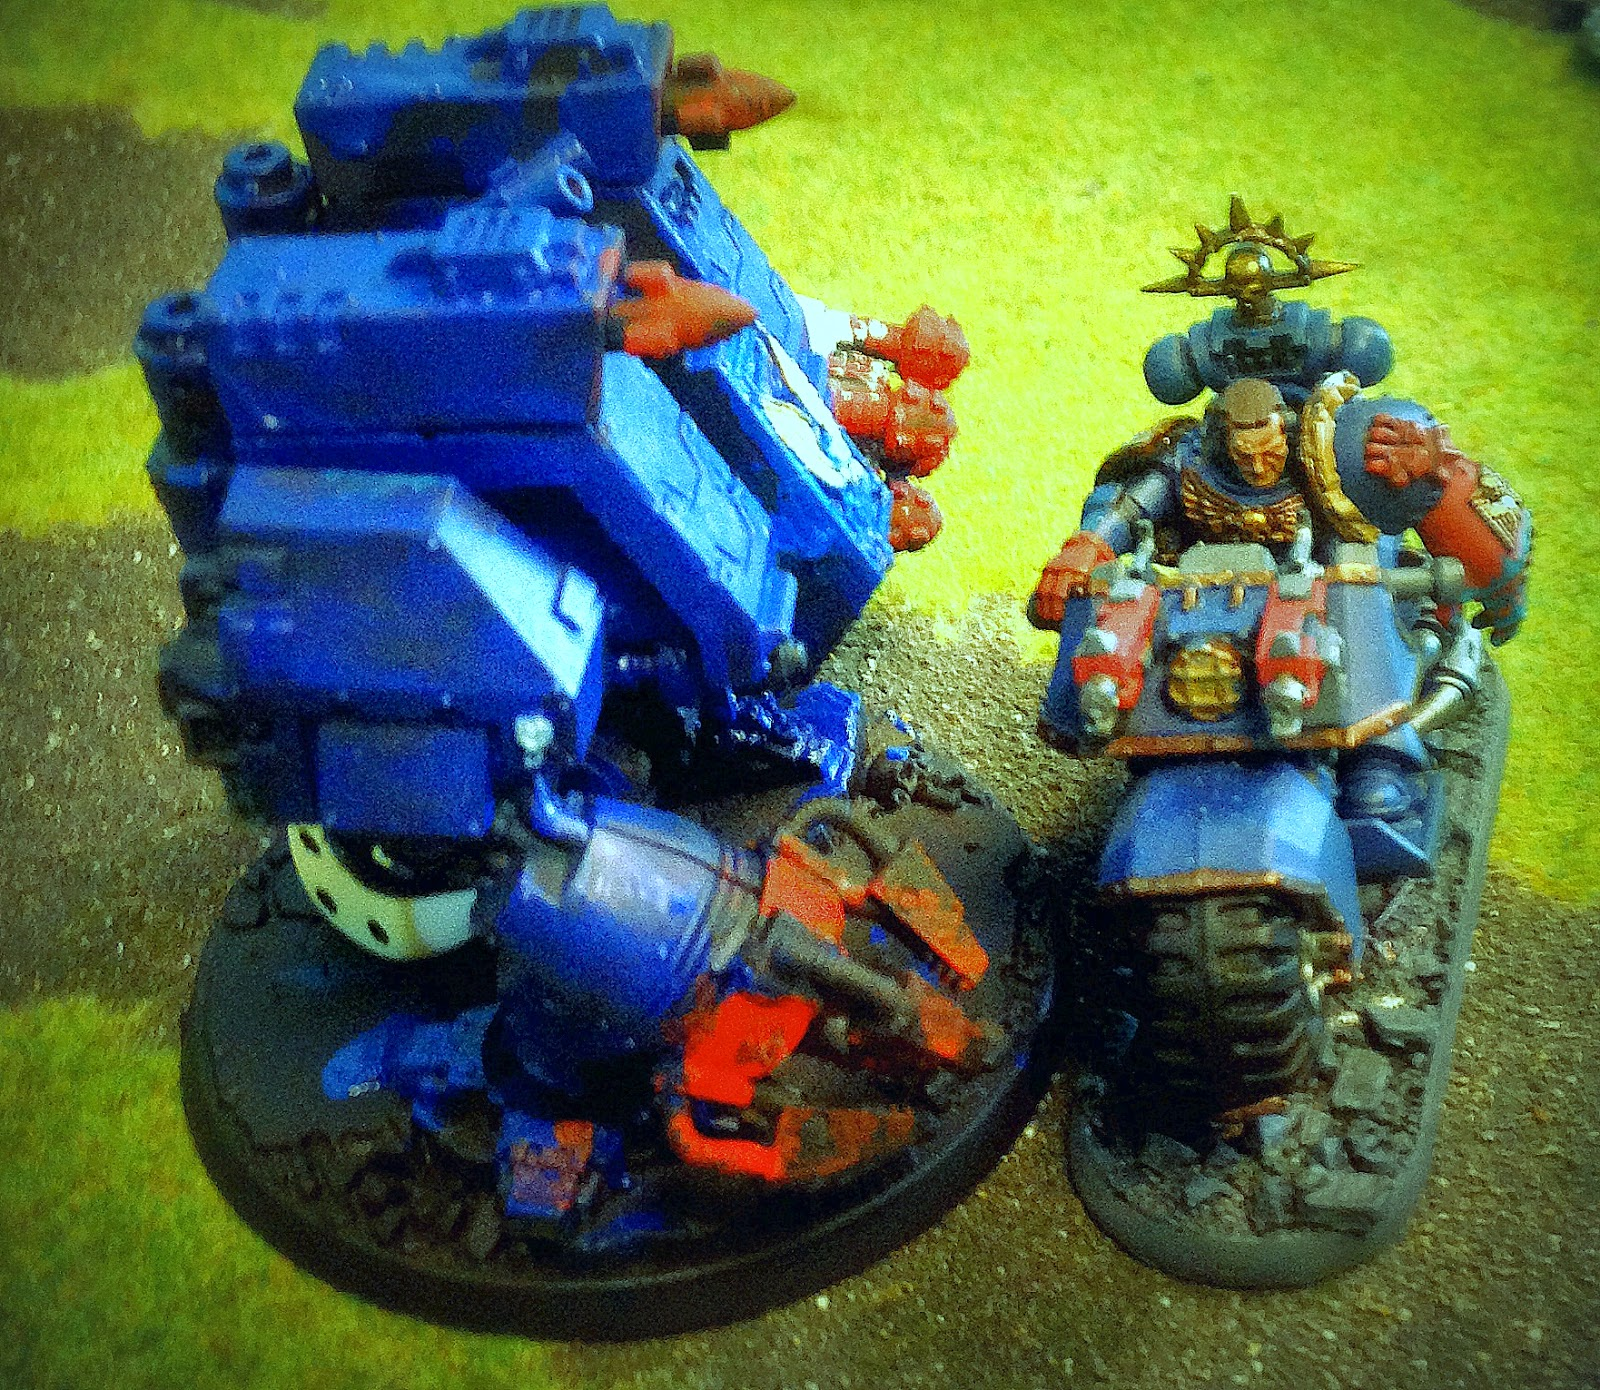 Space Marine Dreadnought close combat, Battle Gaming One